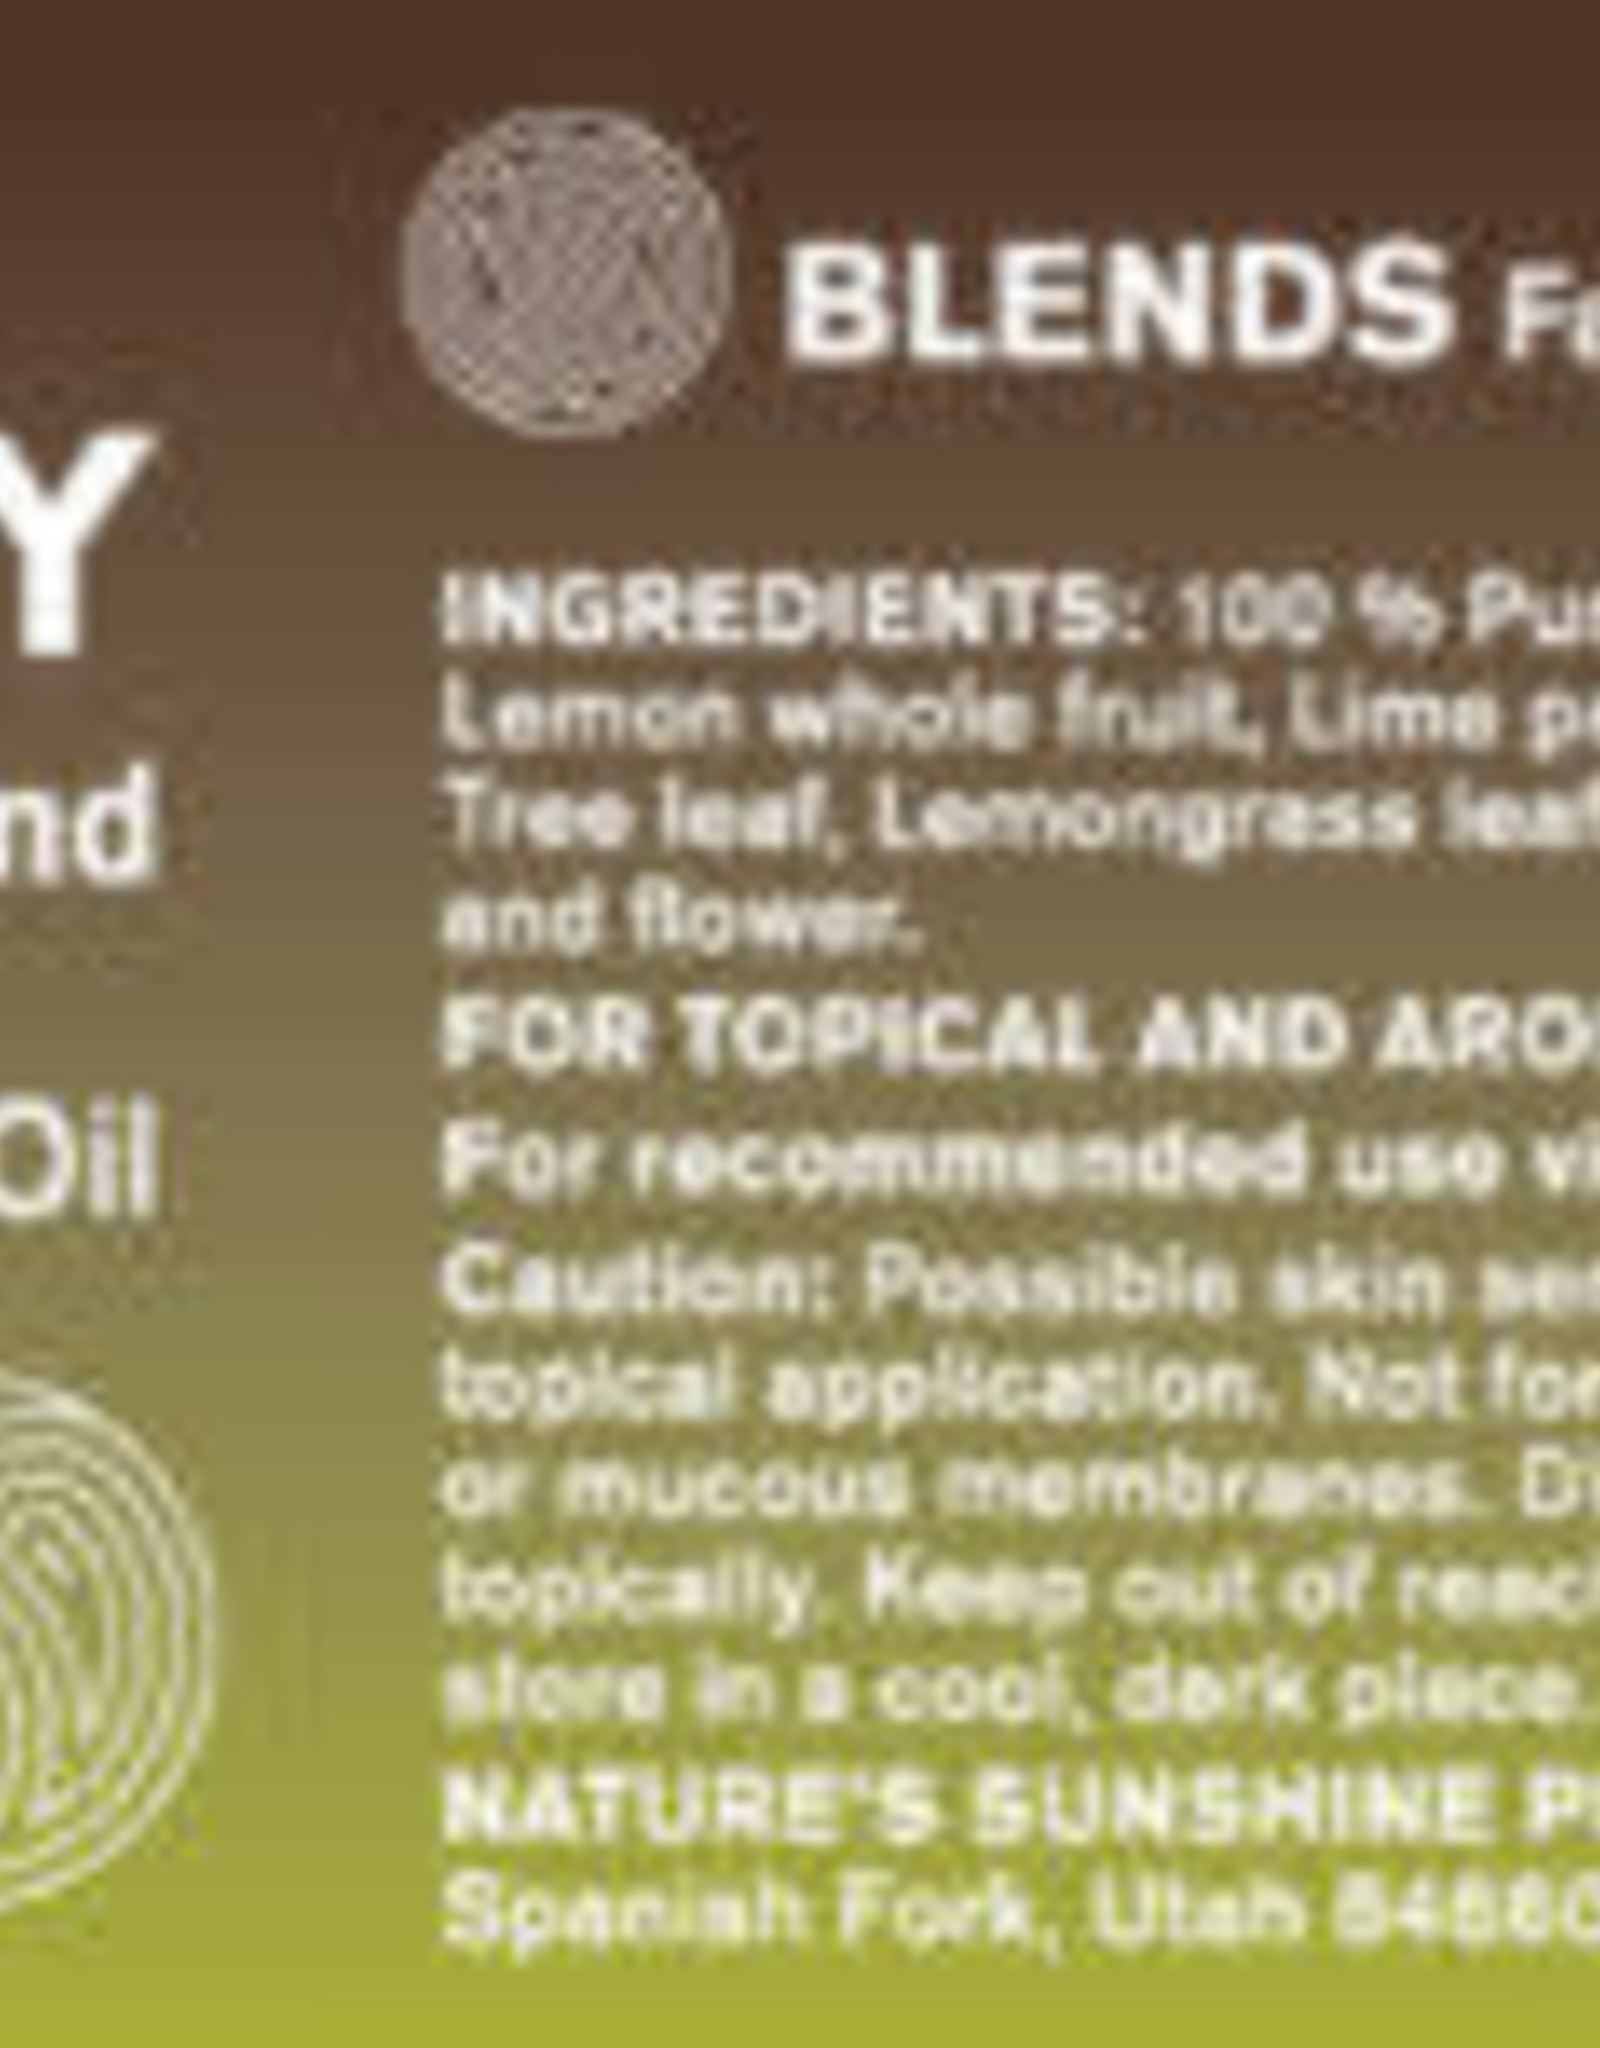 Nature's Sunshine Purity Oil Blend